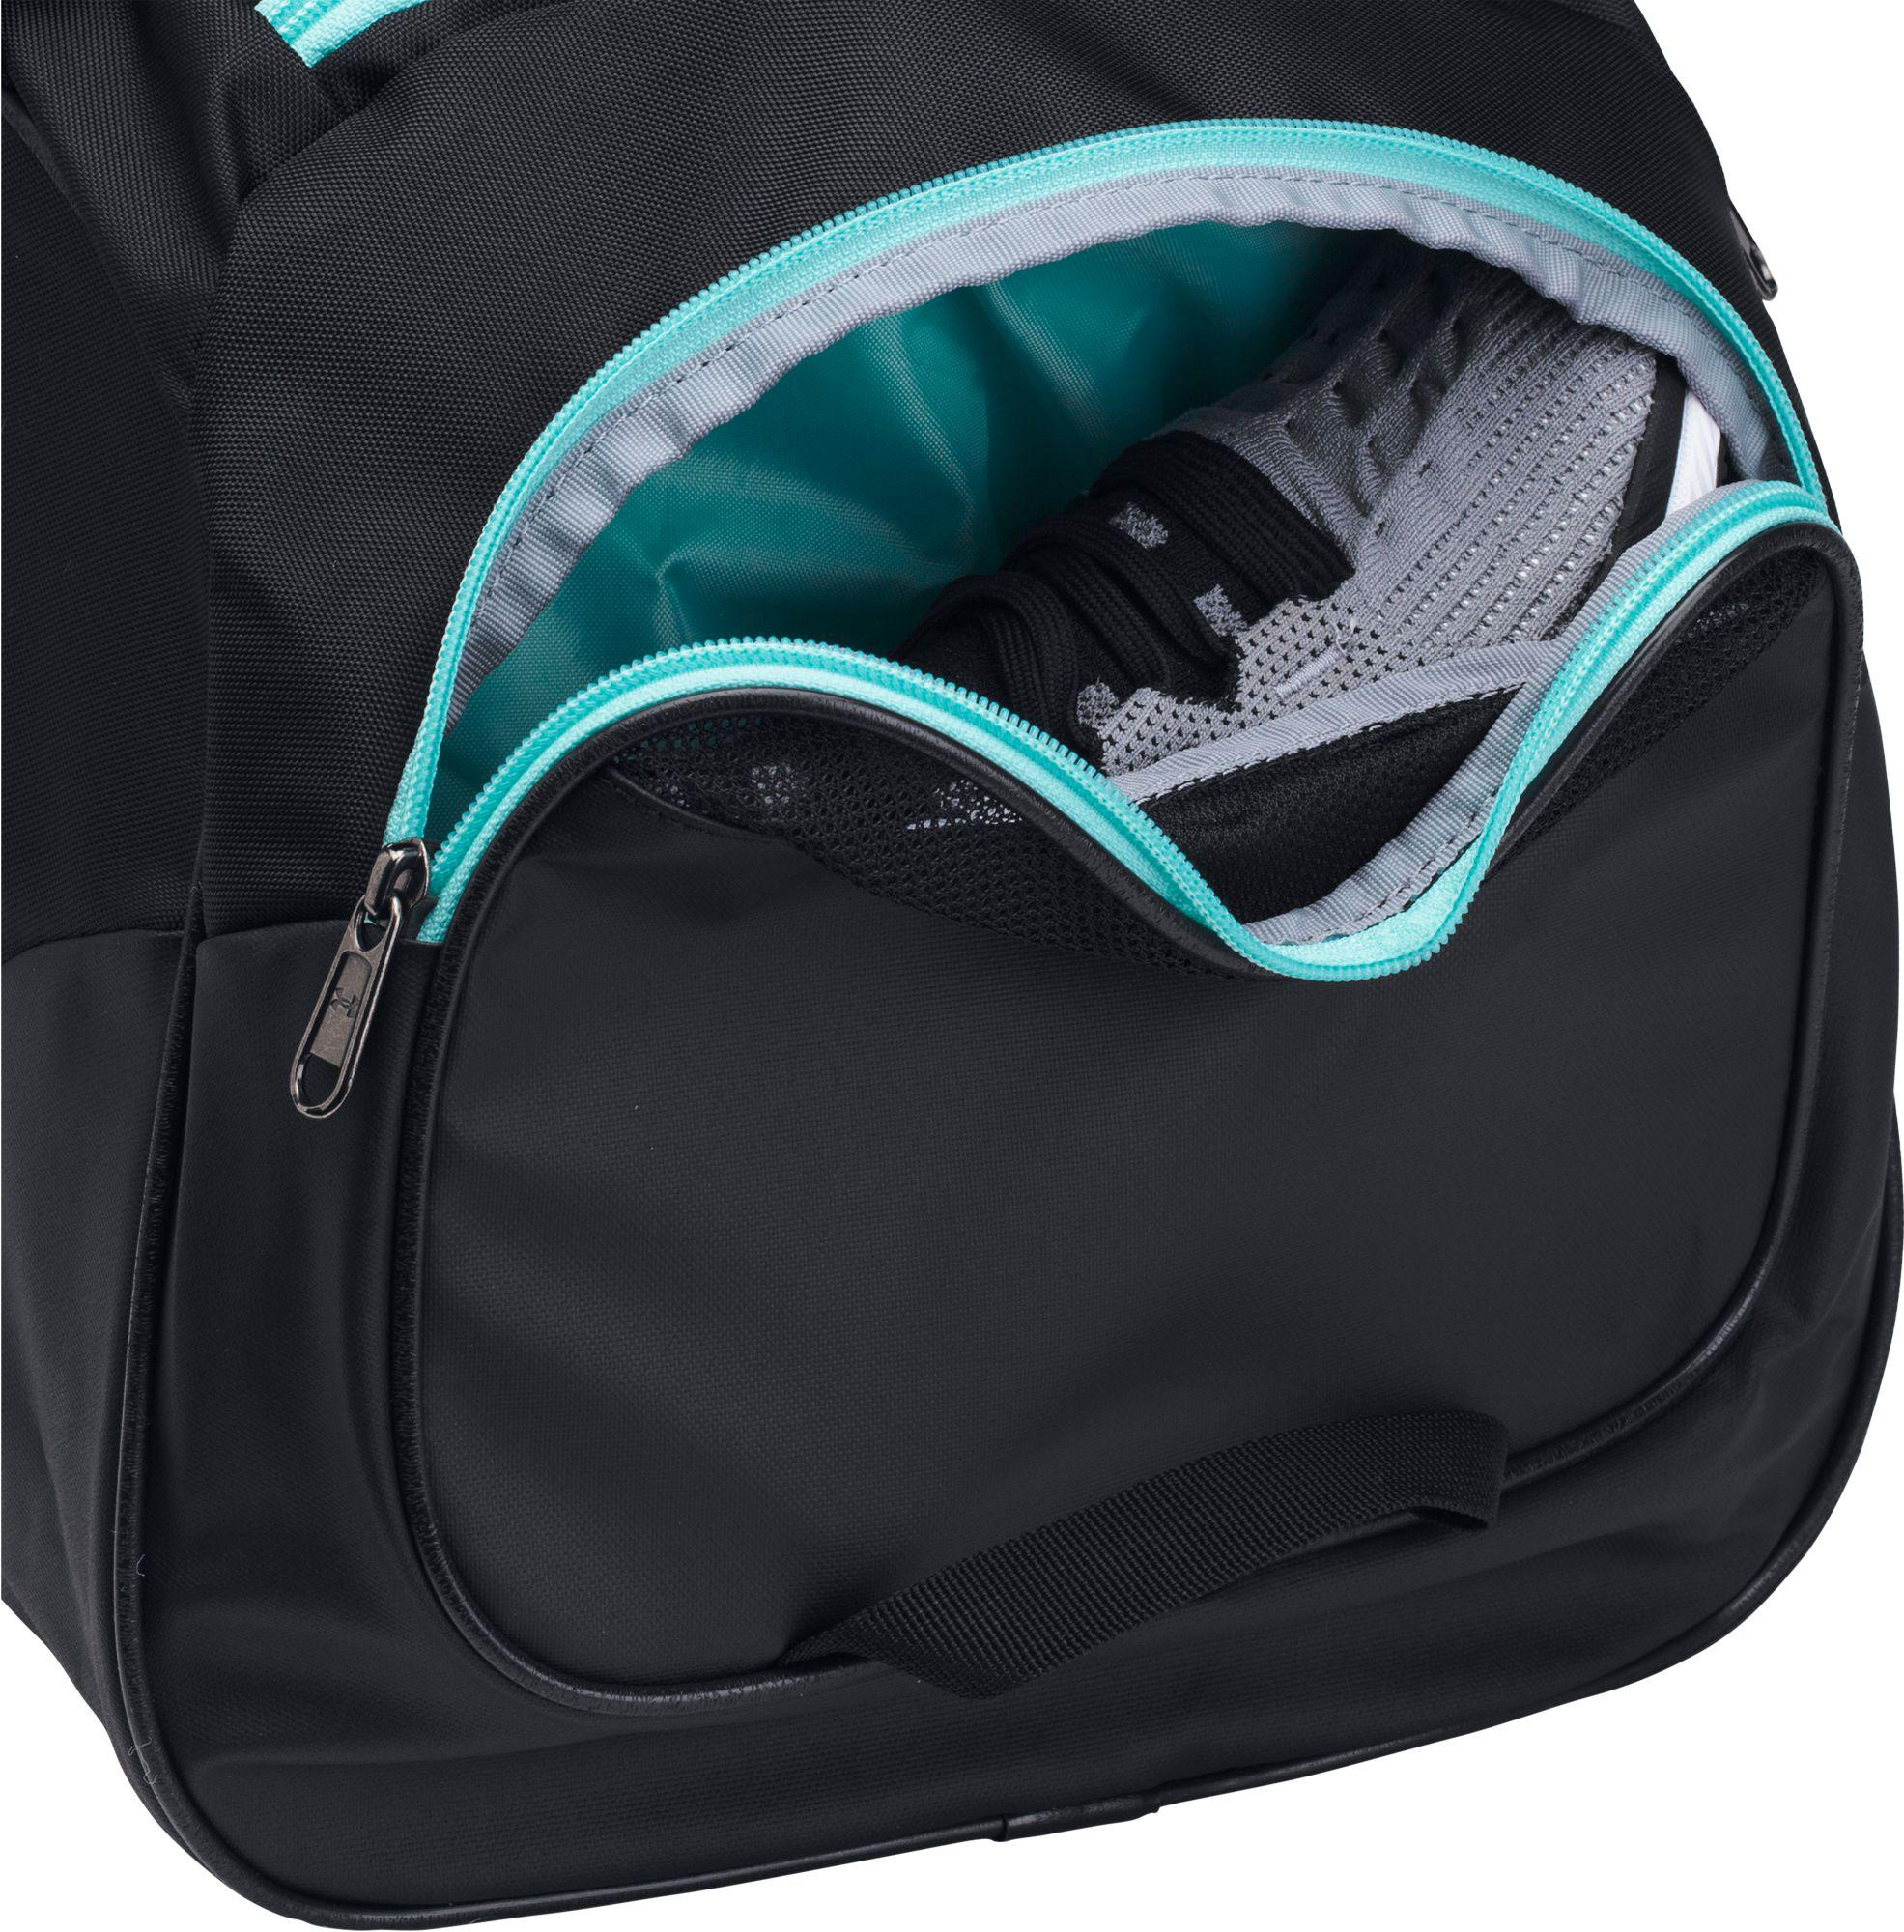 Lyst - Under Armour Undeniable 3.0 Small Duffle Bag in Black for Men 663481c9a8